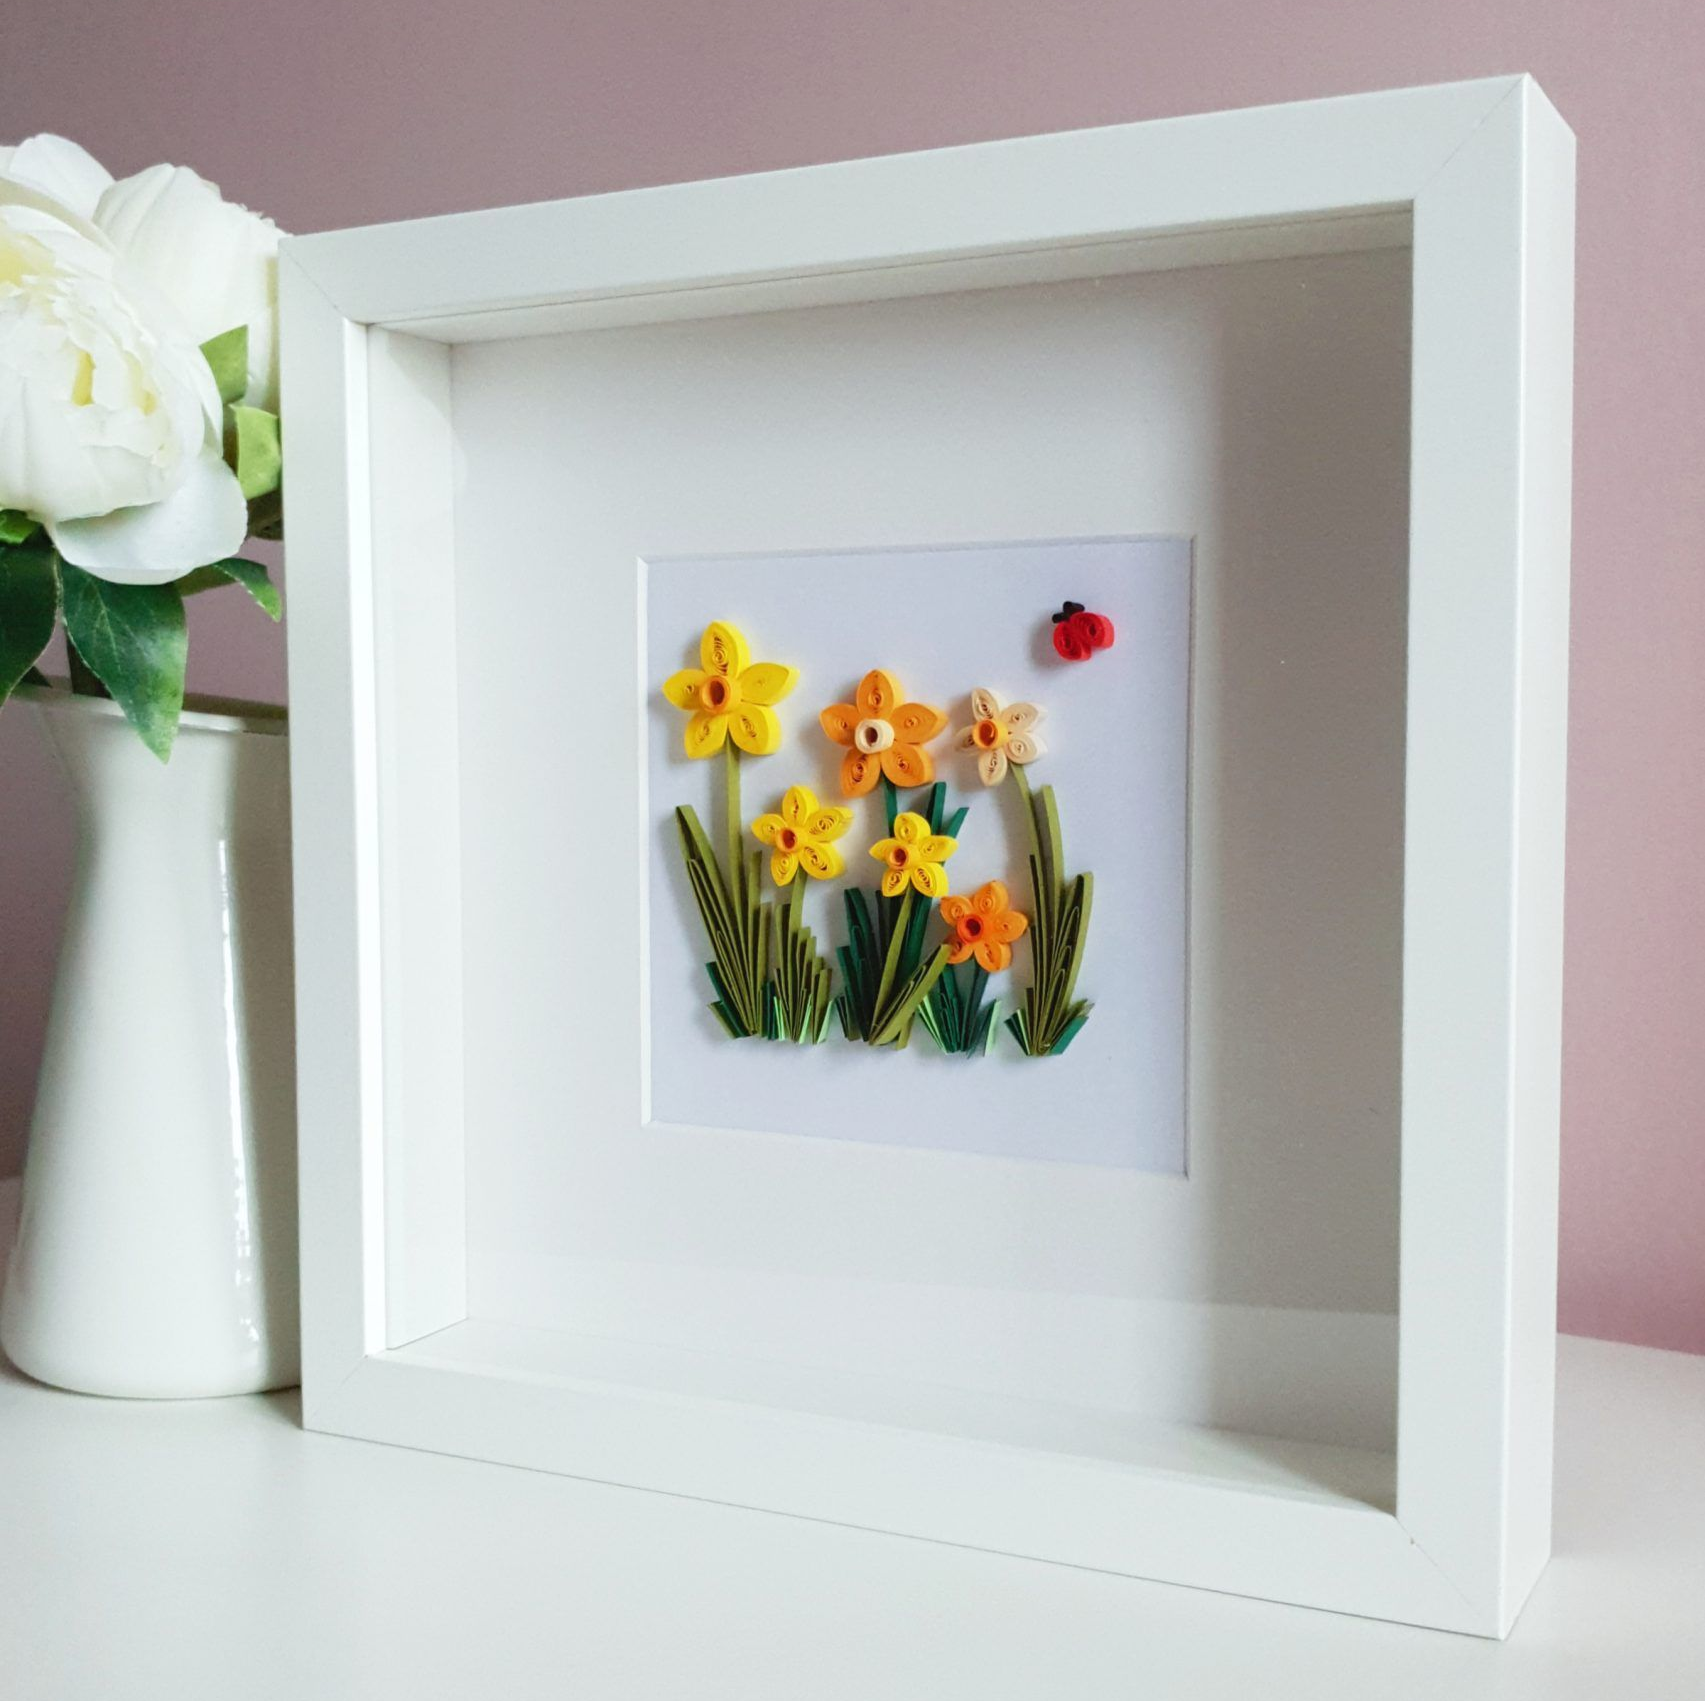 Paper daffodils in a white frame